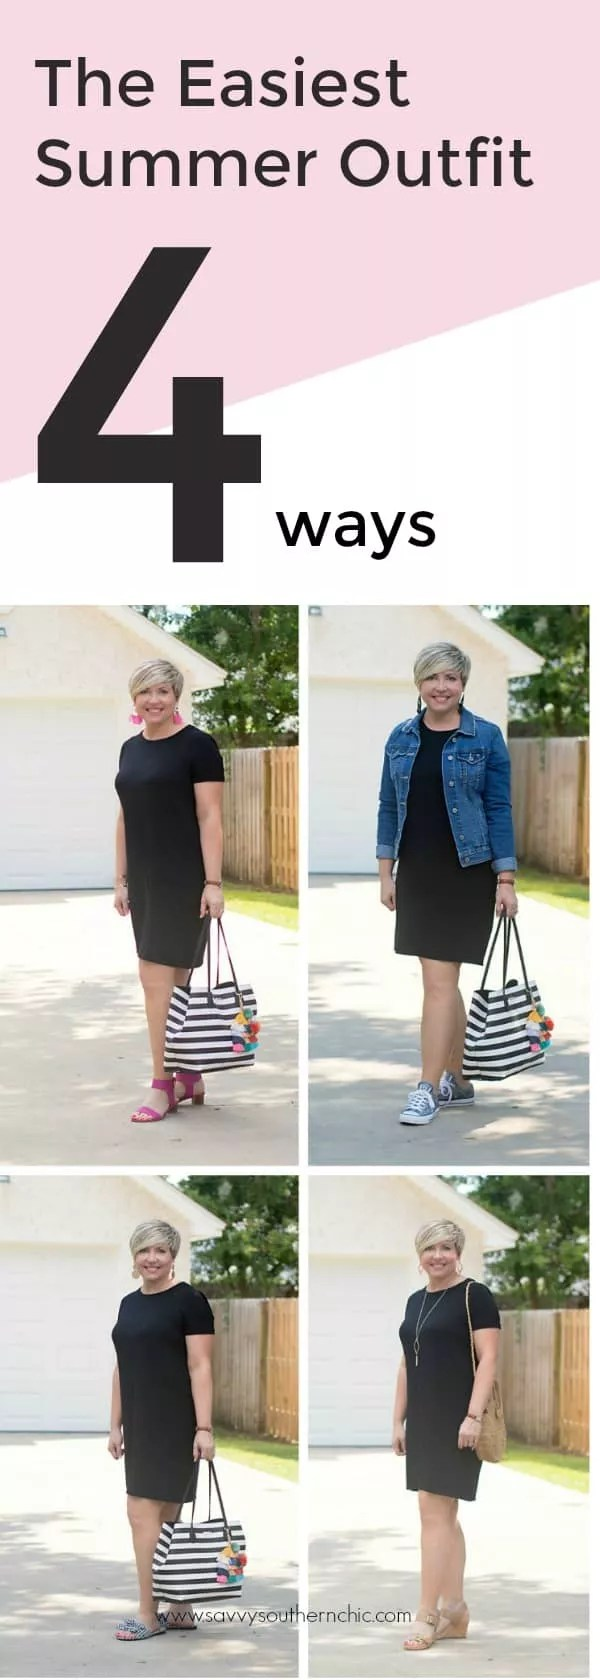 easiest summer outfit 4 ways